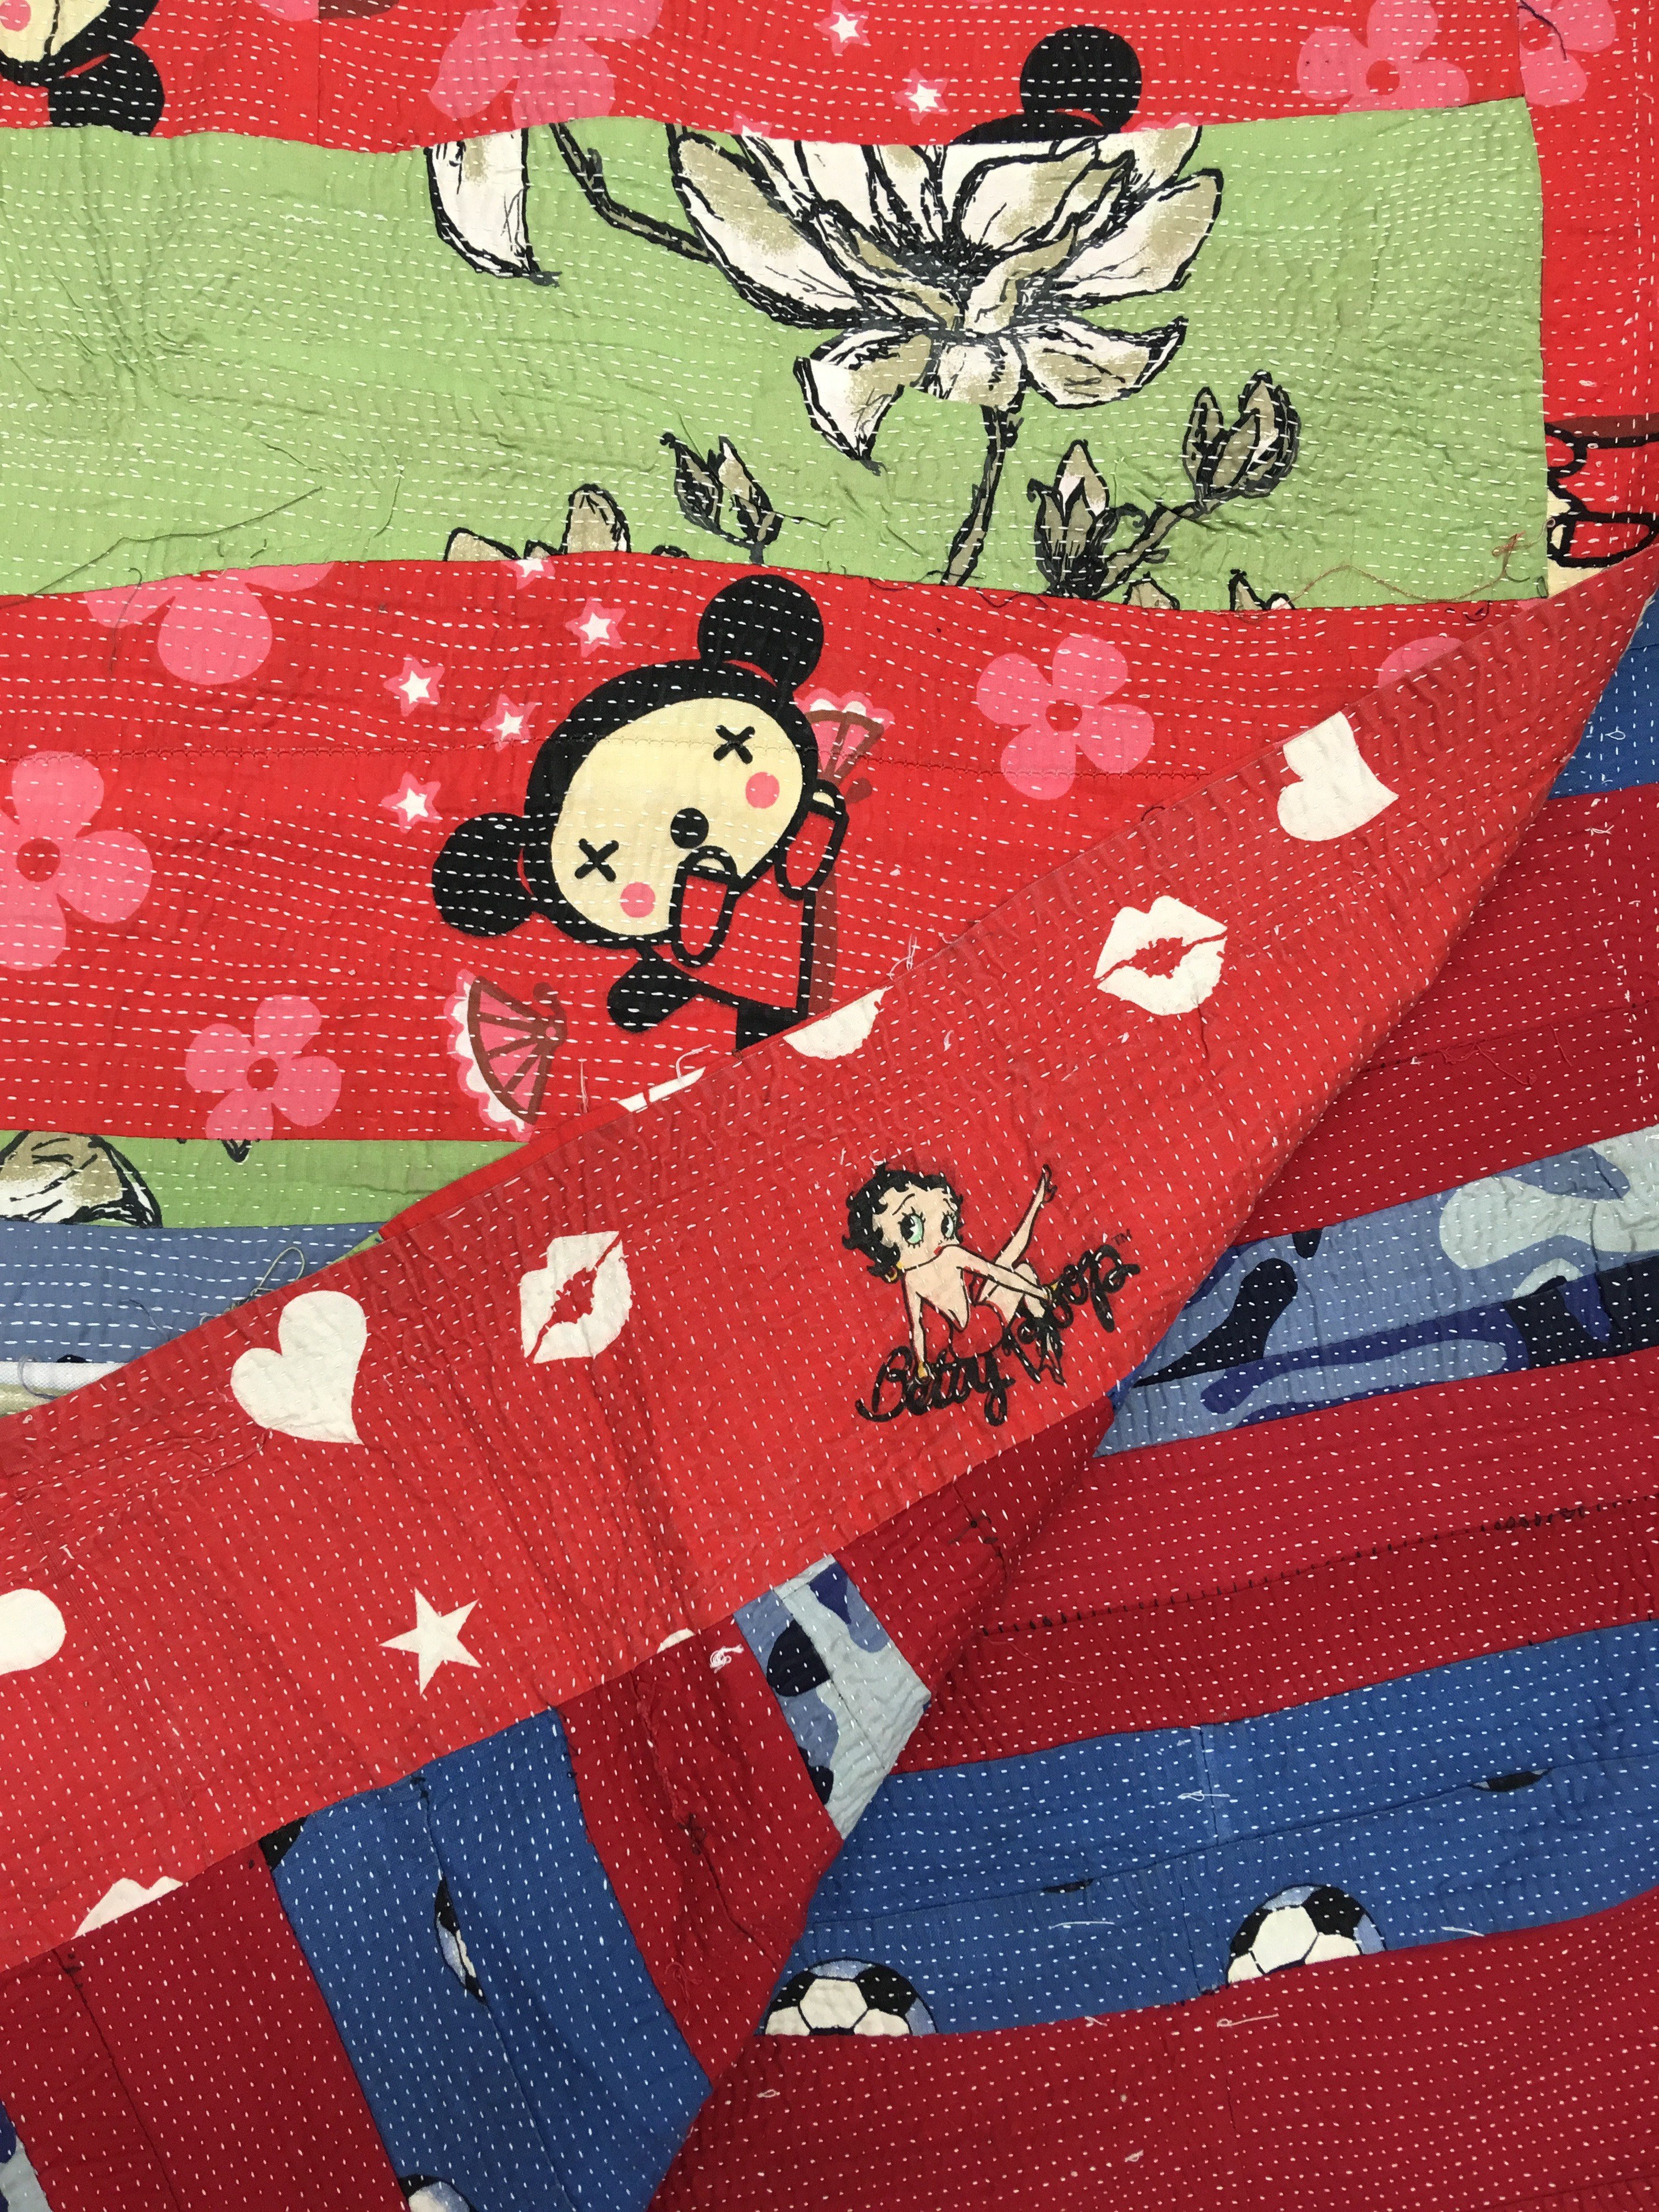 Red Blue Green Football/Pucca cartoon Patchwork